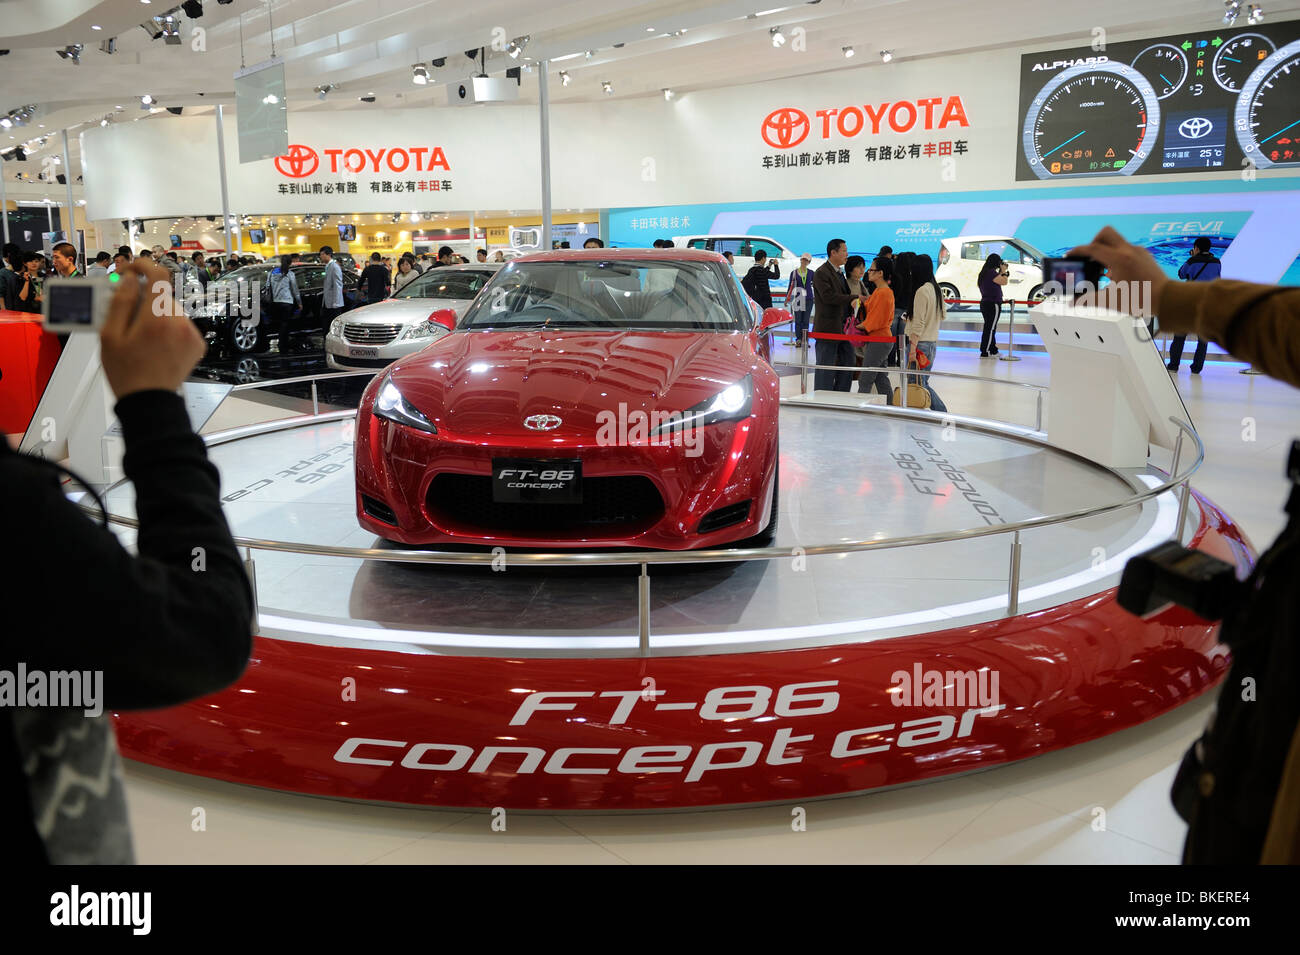 Toyota FT 86 Concept Car At Beijing Auto Show 2010.   Stock Image